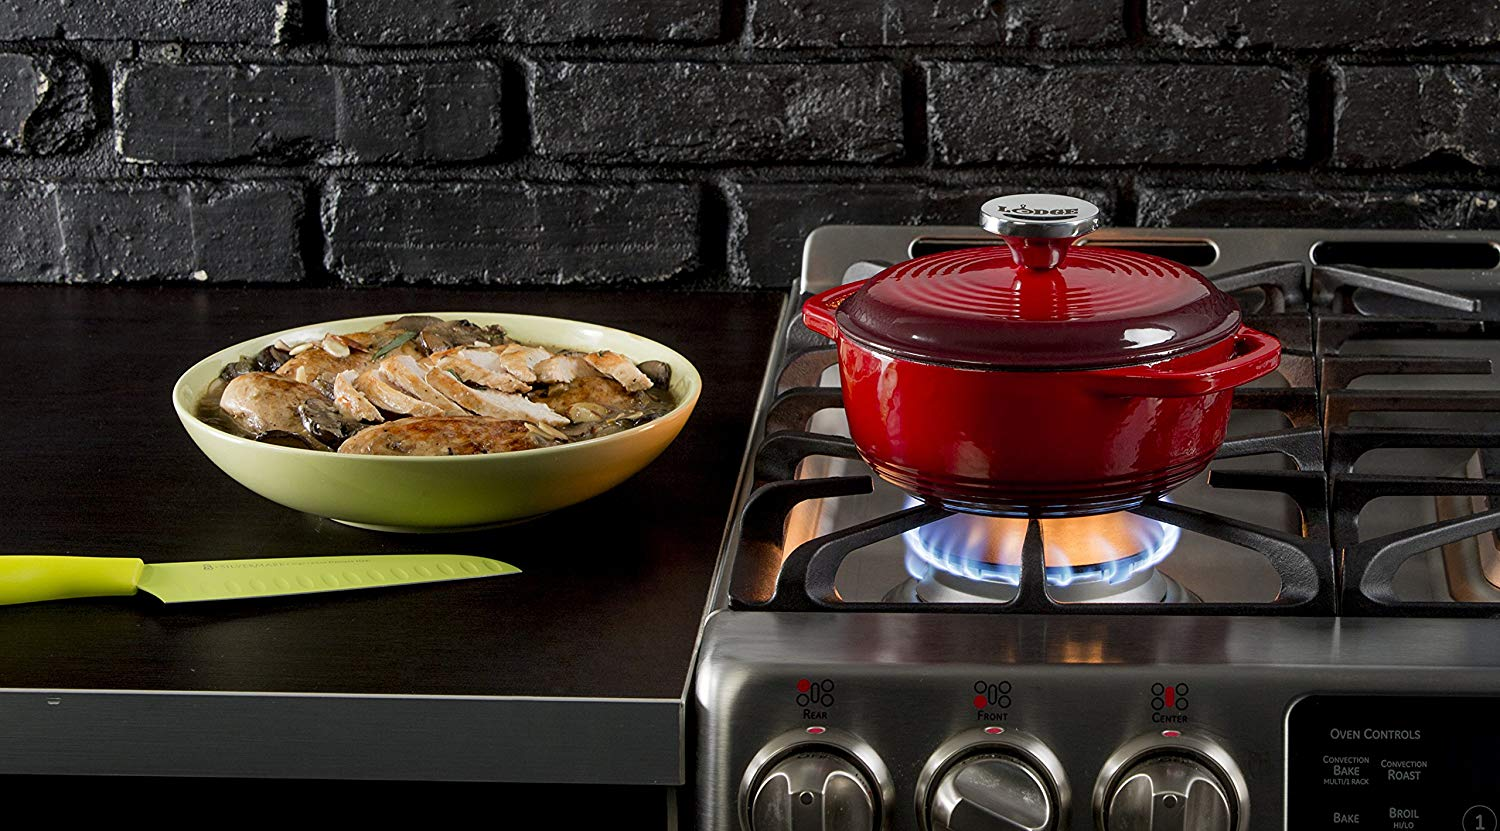 Lodge EC1D43 Dutch Oven Enameled Cast-Iron